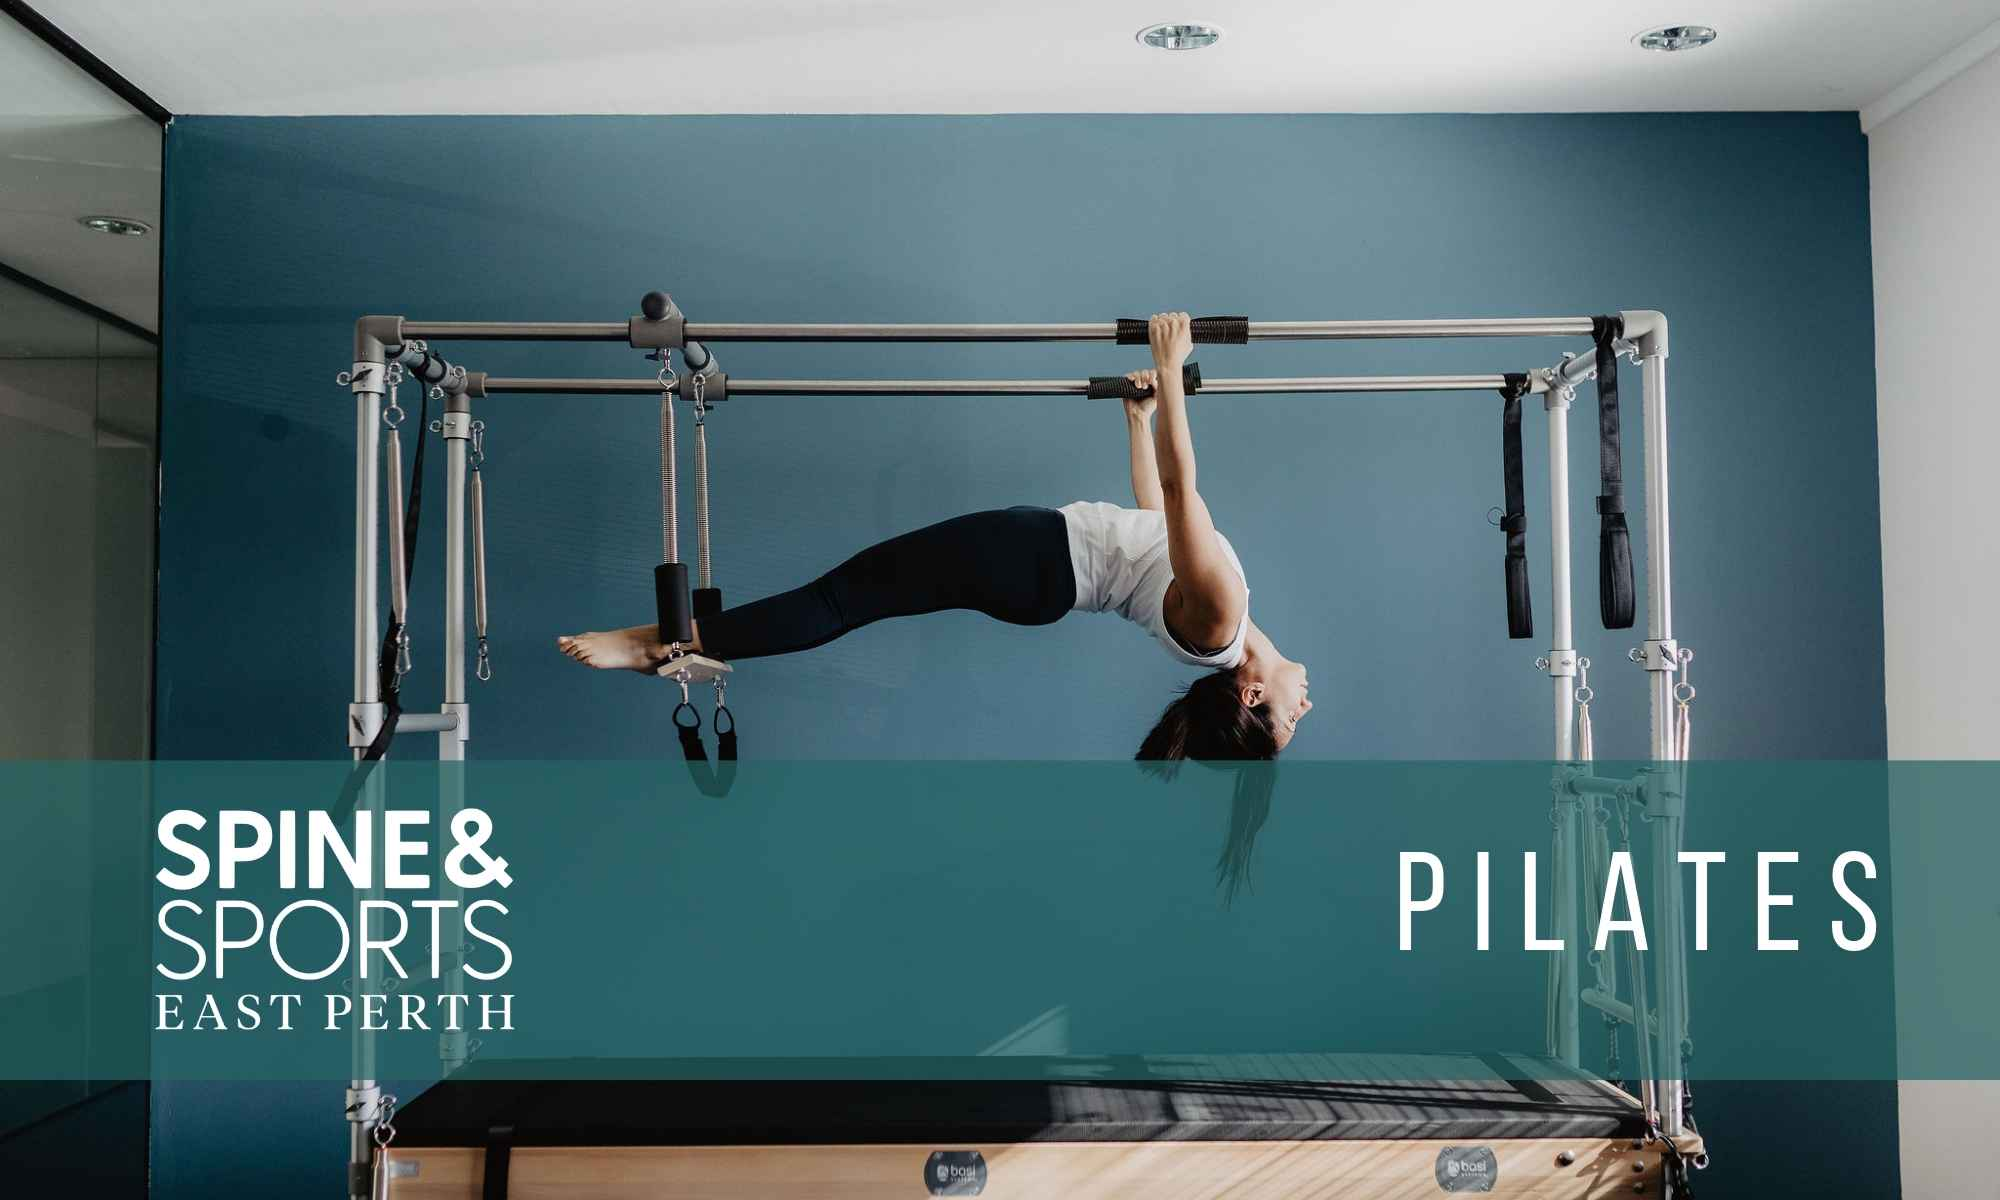 East Perth Pilates at Spine & Sports Centre.jpg